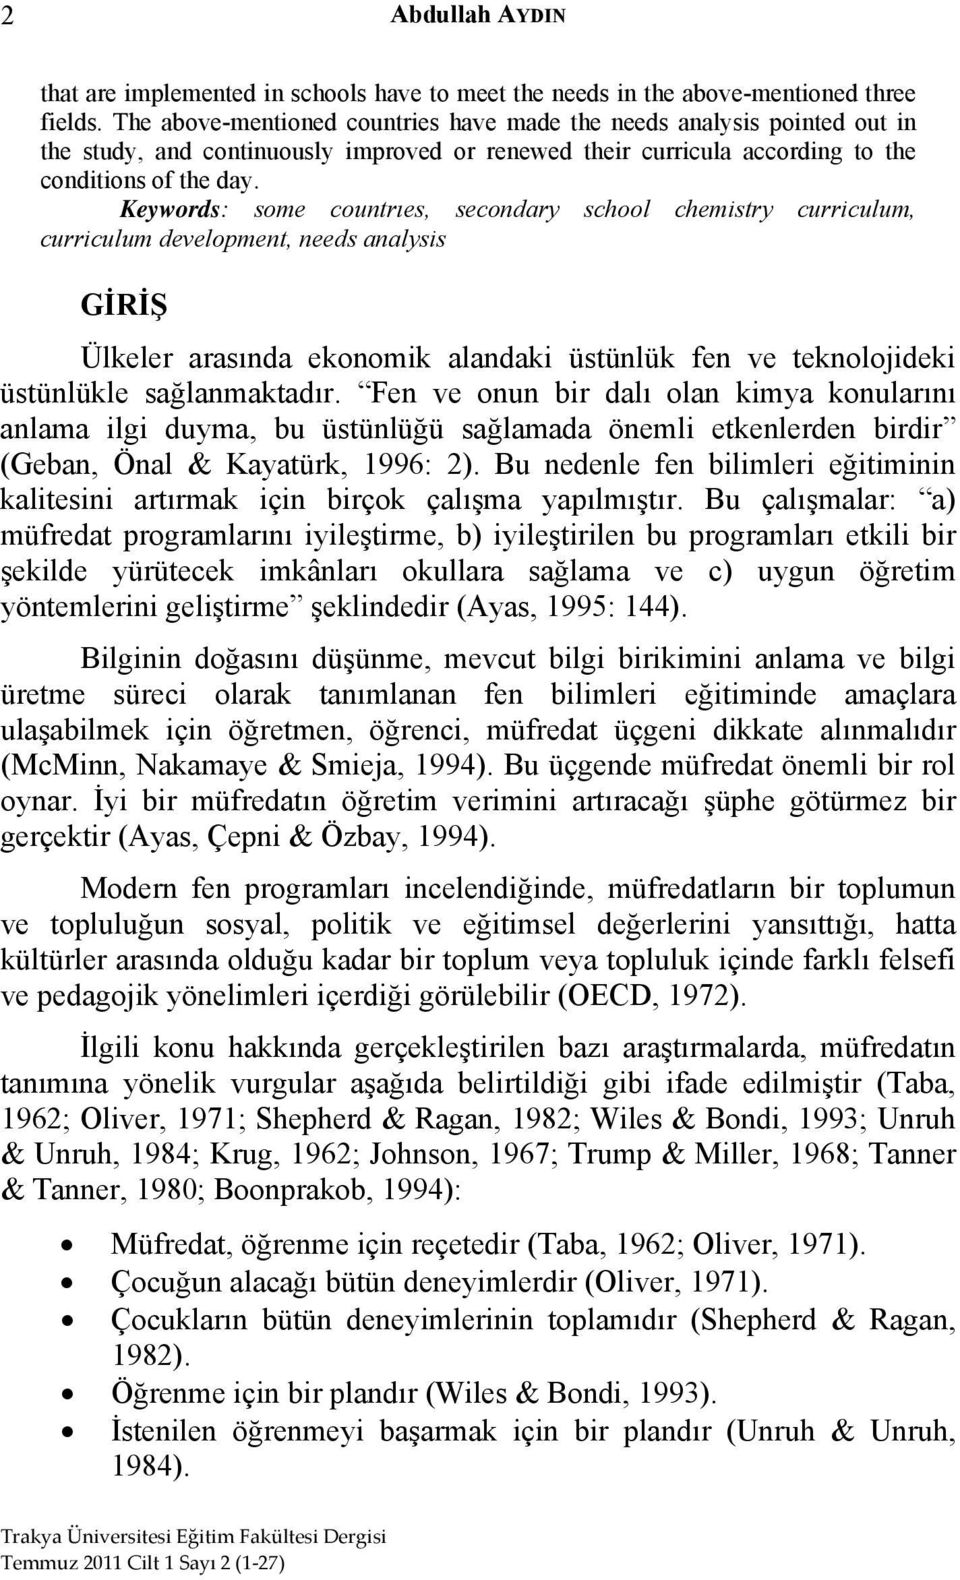 Keywords: some countrıes, secondary school chemistry curriculum, curriculum development, needs analysis GİRİŞ Ülkeler arasında ekonomik alandaki üstünlük fen ve teknolojideki üstünlükle